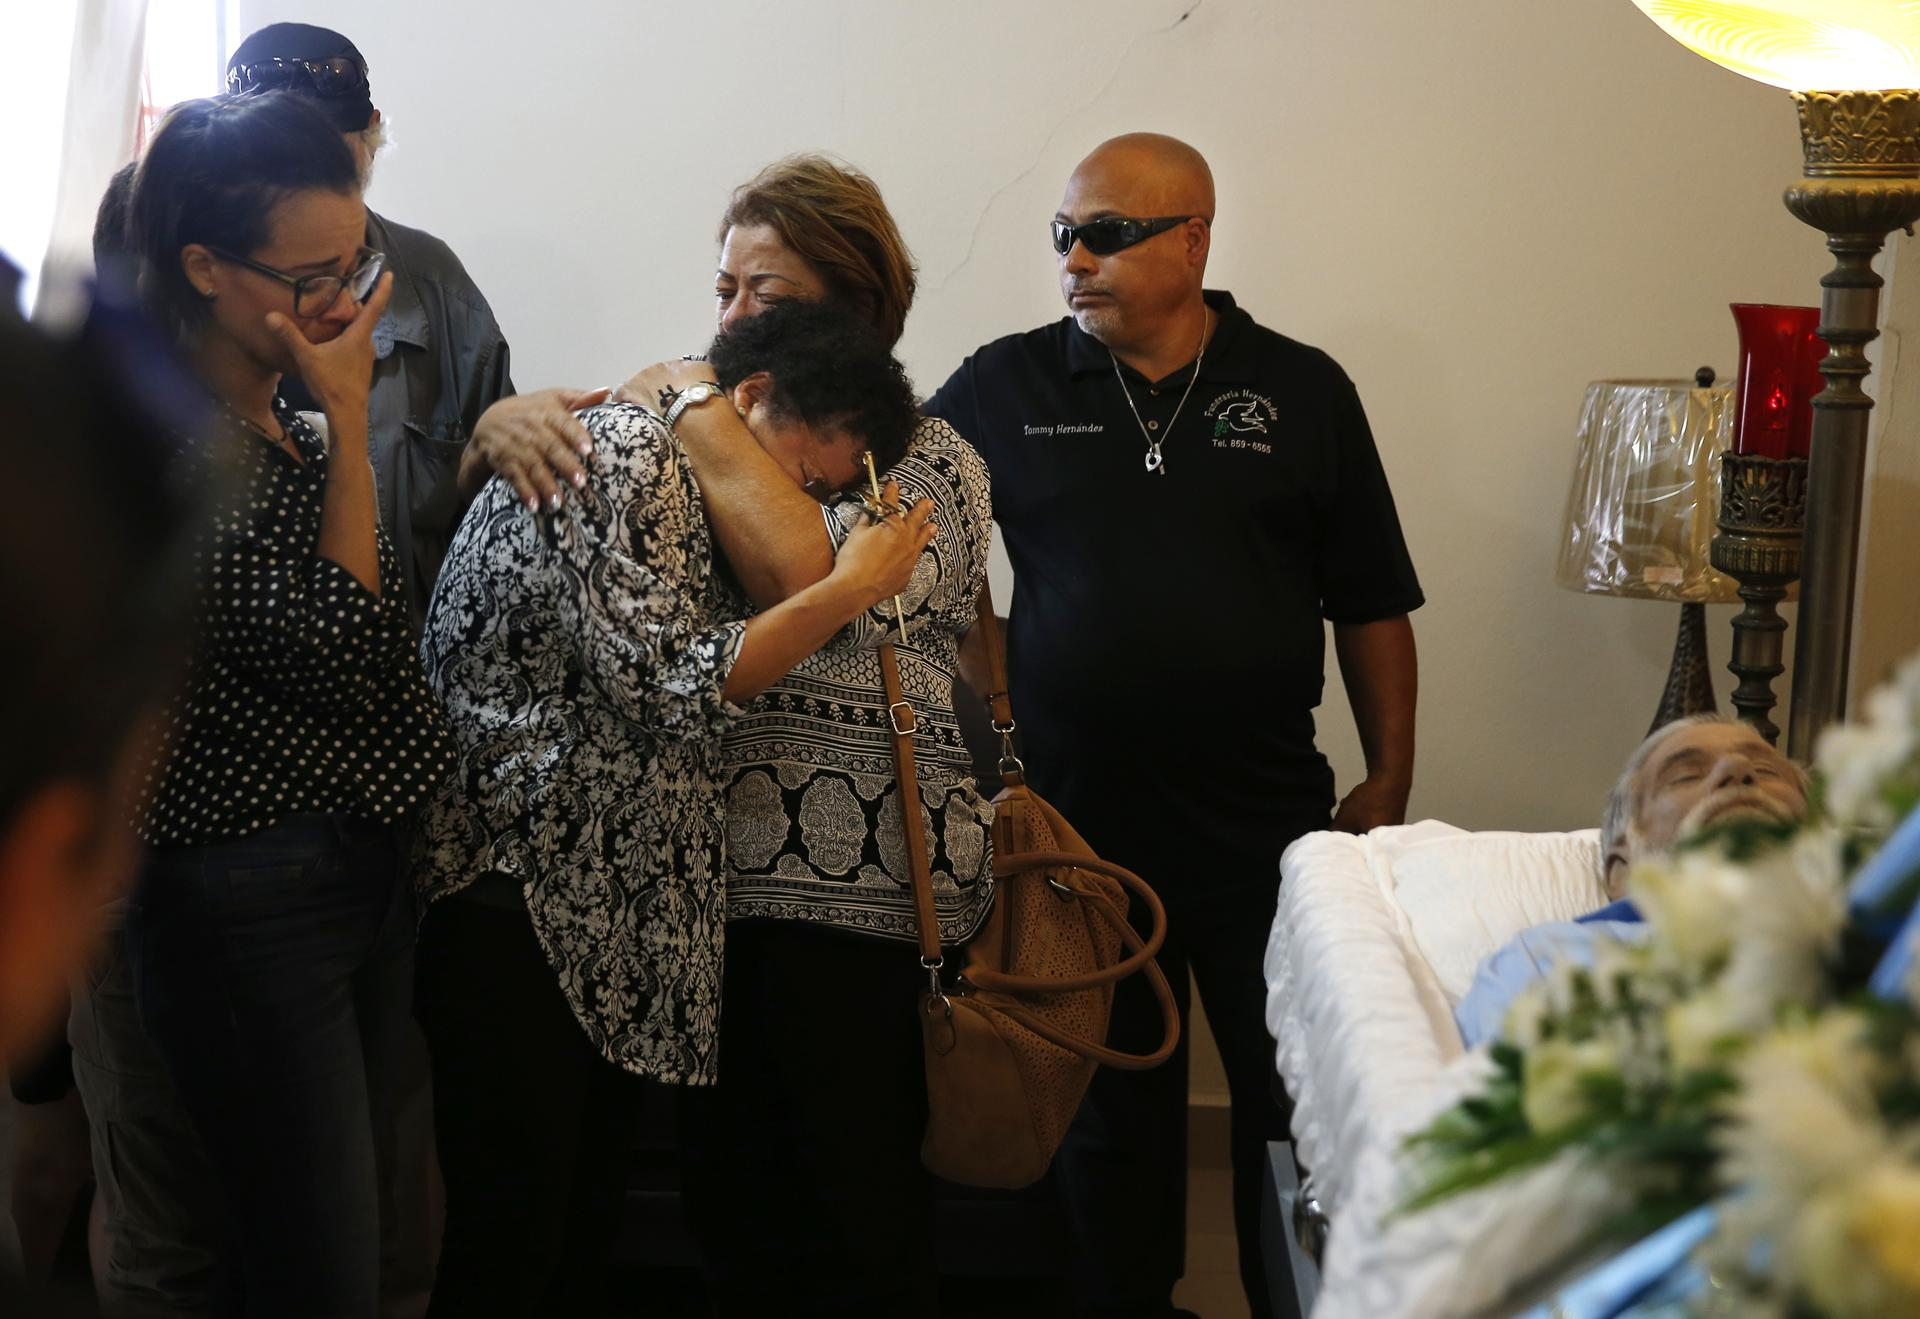 Ana Ruiz was consoled as funeral directors prepared to close the casket of her husband, Victor Hugo Ruiz, in Corozal, Puerto Rico.